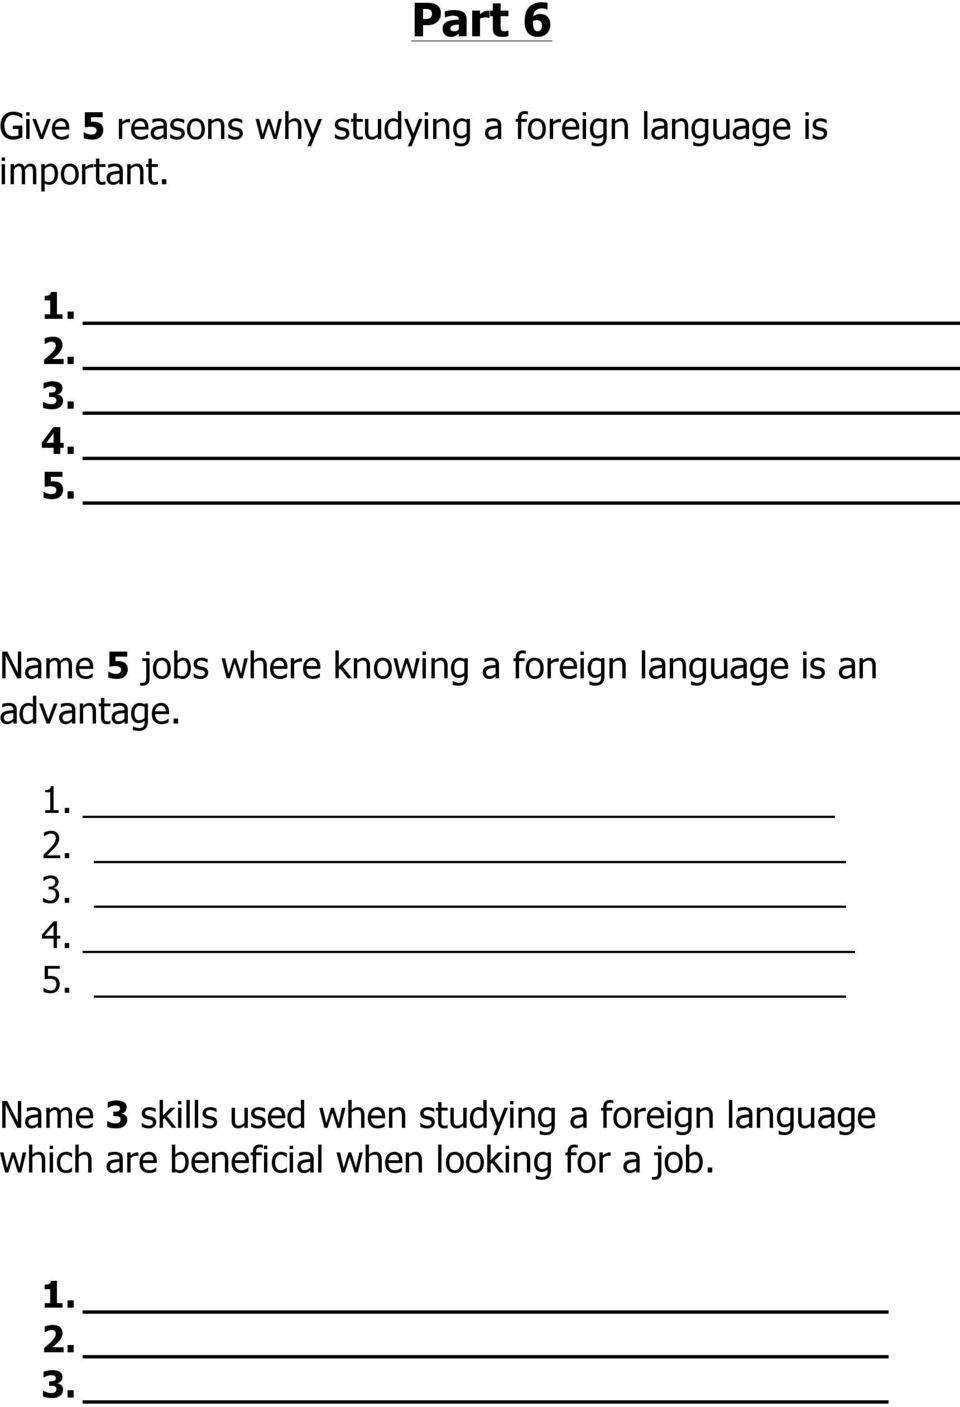 Name 5 jobs where knowing a foreign language is an advantage.